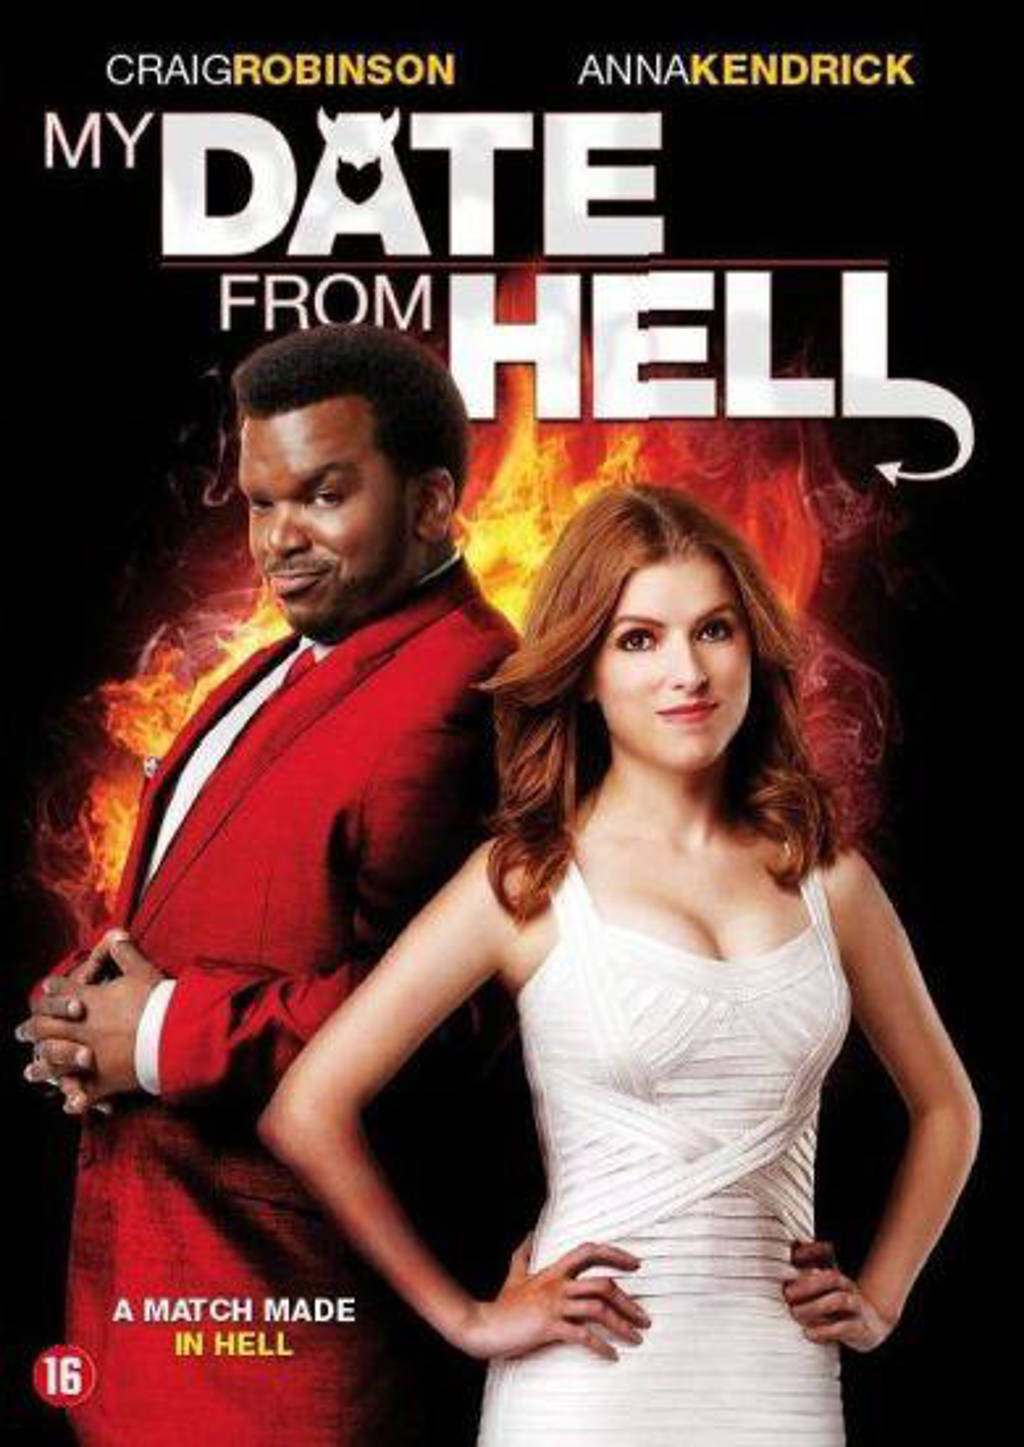 My date from hell (DVD)